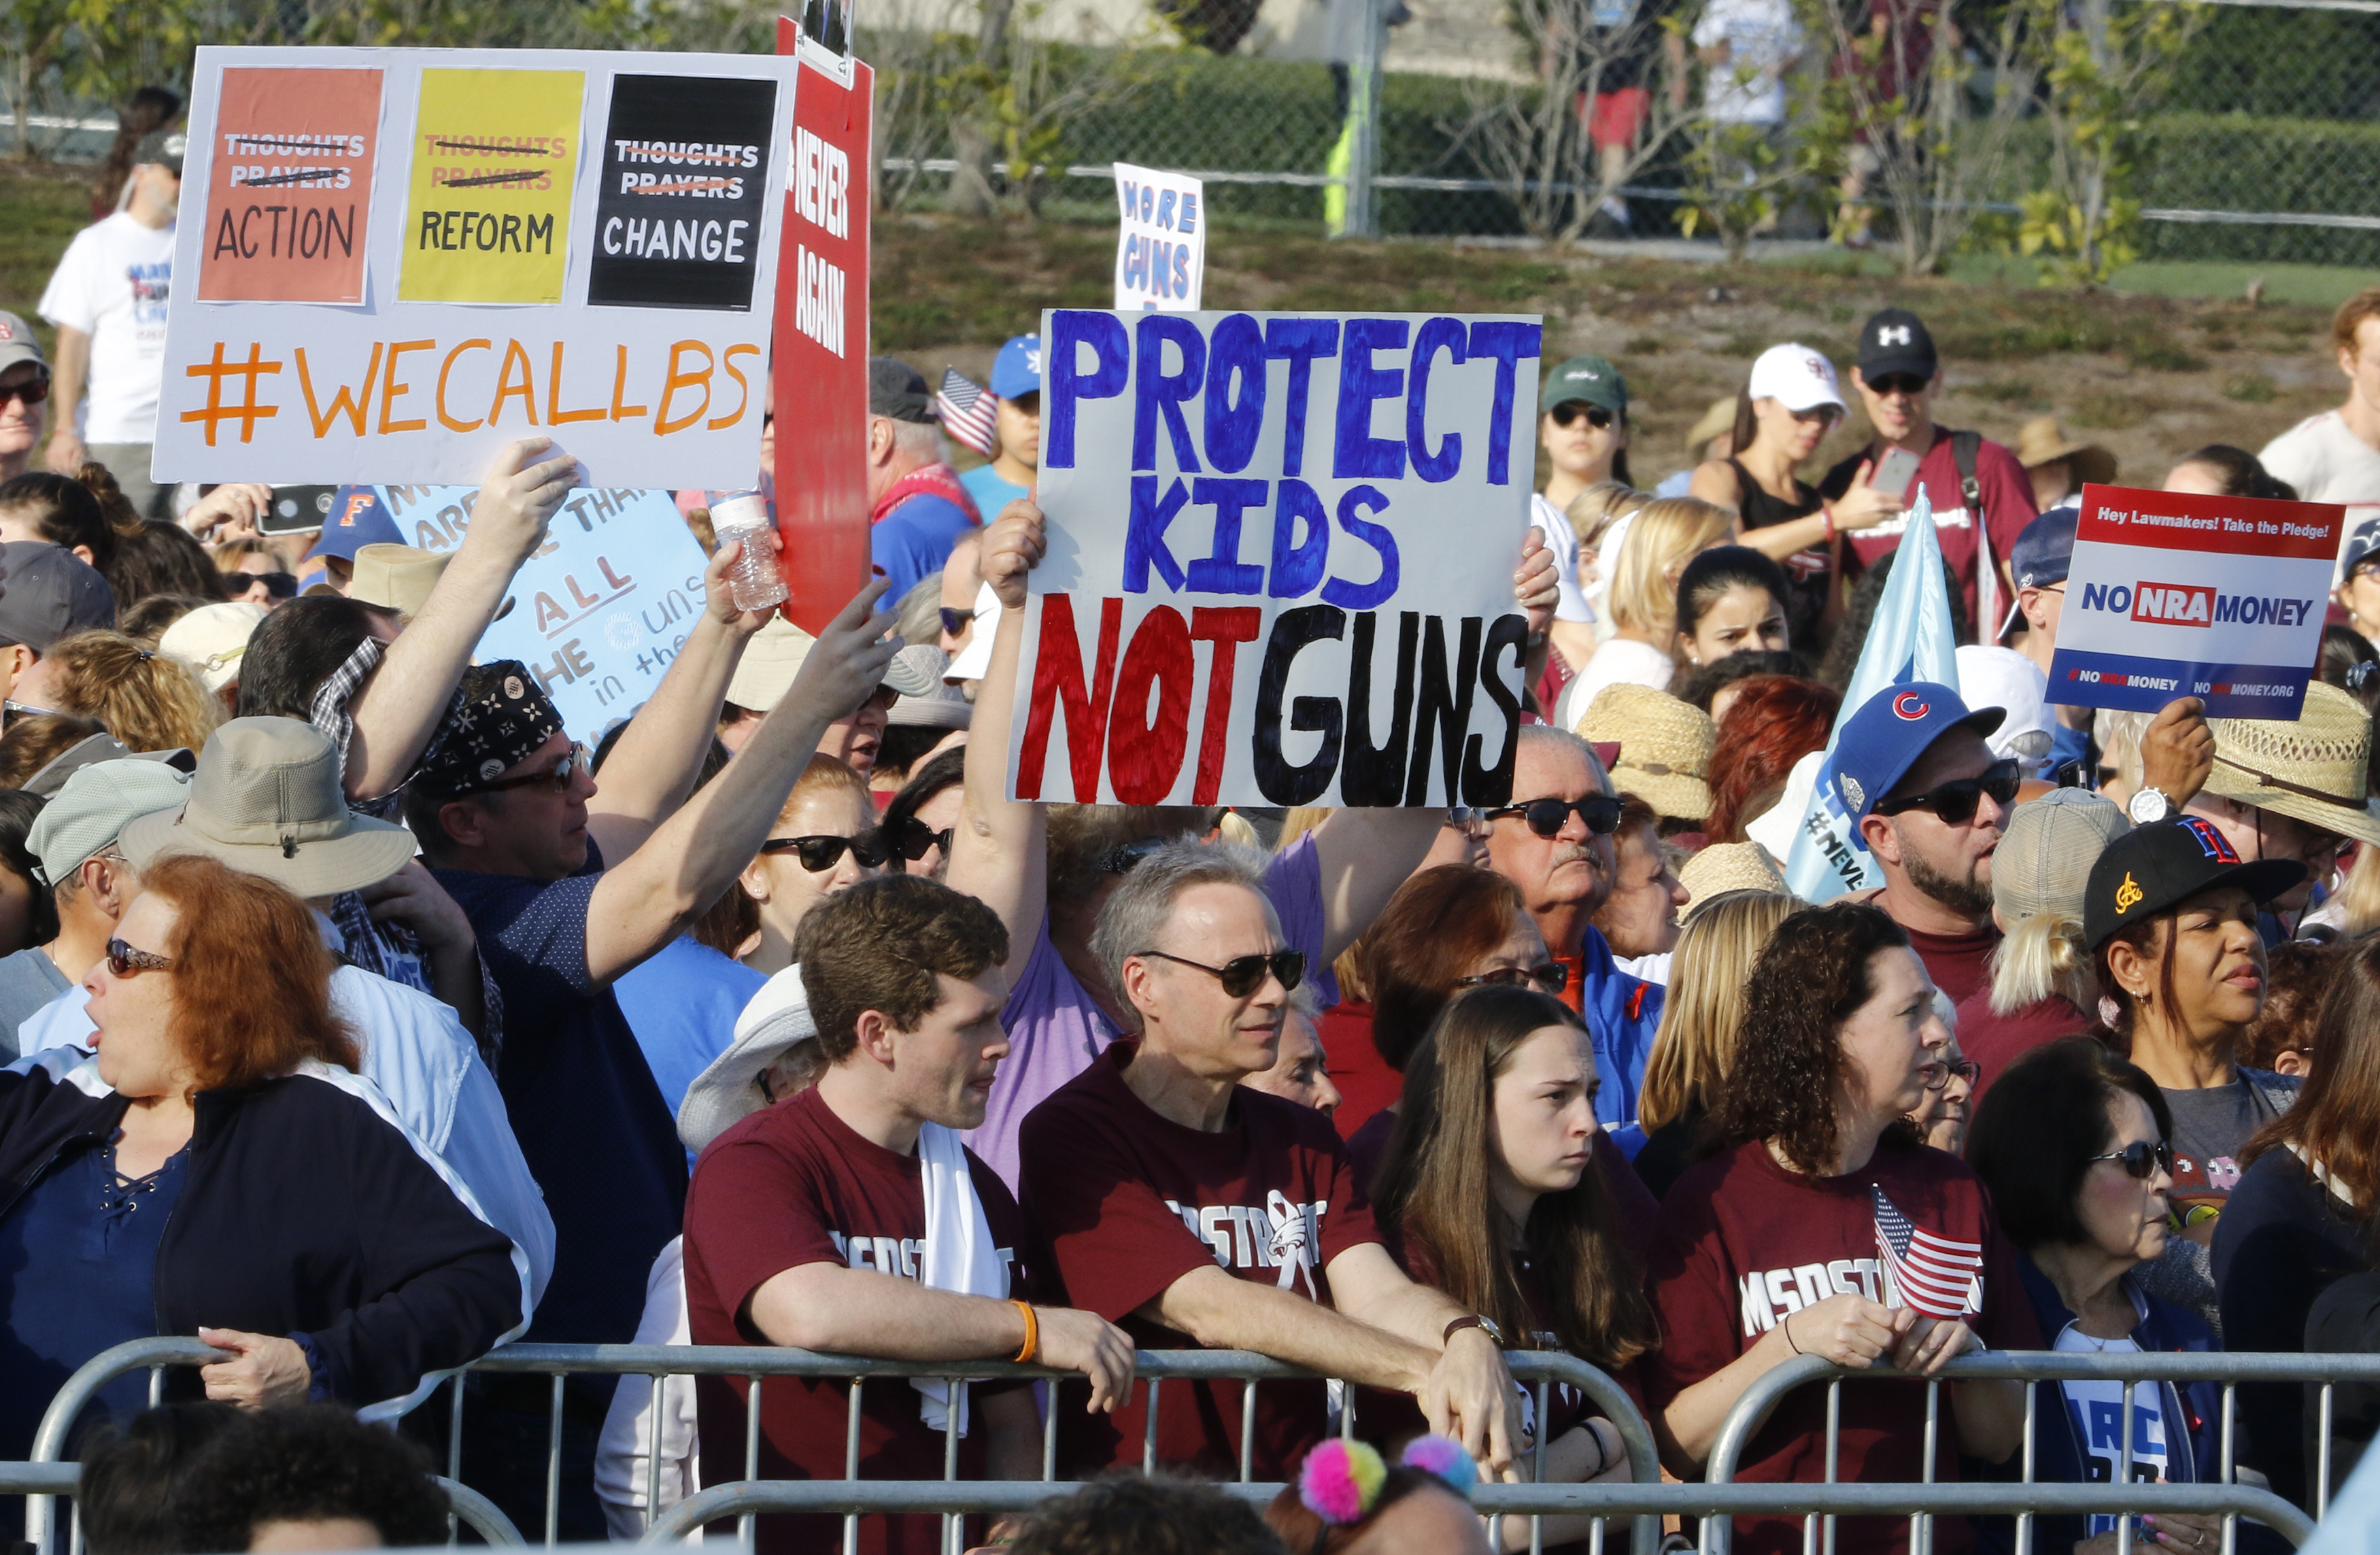 <div class='meta'><div class='origin-logo' data-origin='AP'></div><span class='caption-text' data-credit='AP Photo/Joe Skipper'>Participants gather during the March For Our Lives event Saturday, March 24, 2018, in Parkland, Fla.</span></div>